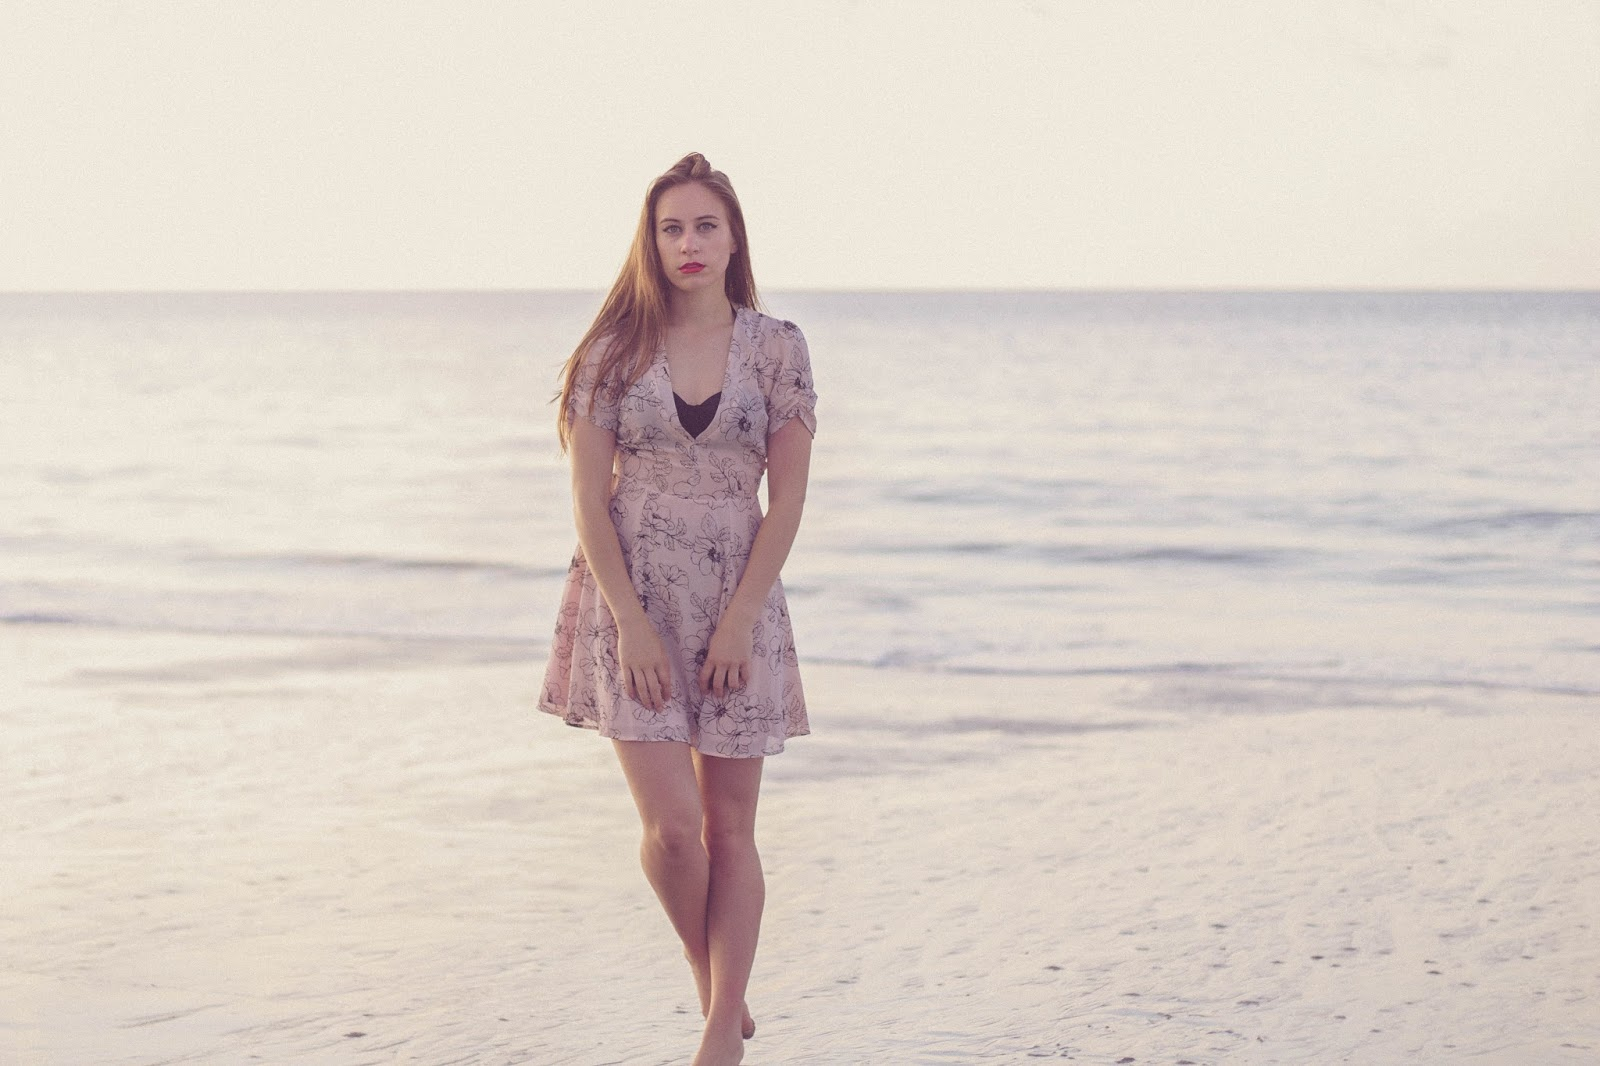 vintage, beach outfit, romantic outfit, retro, style, vintage beach style, high wasted bathing suit, chiffon floral dress , forever 21, the awakening, kate chopin, personal style blogger, movie blogger, film, summer style, taylor swift style, girly, beach photography, outfit